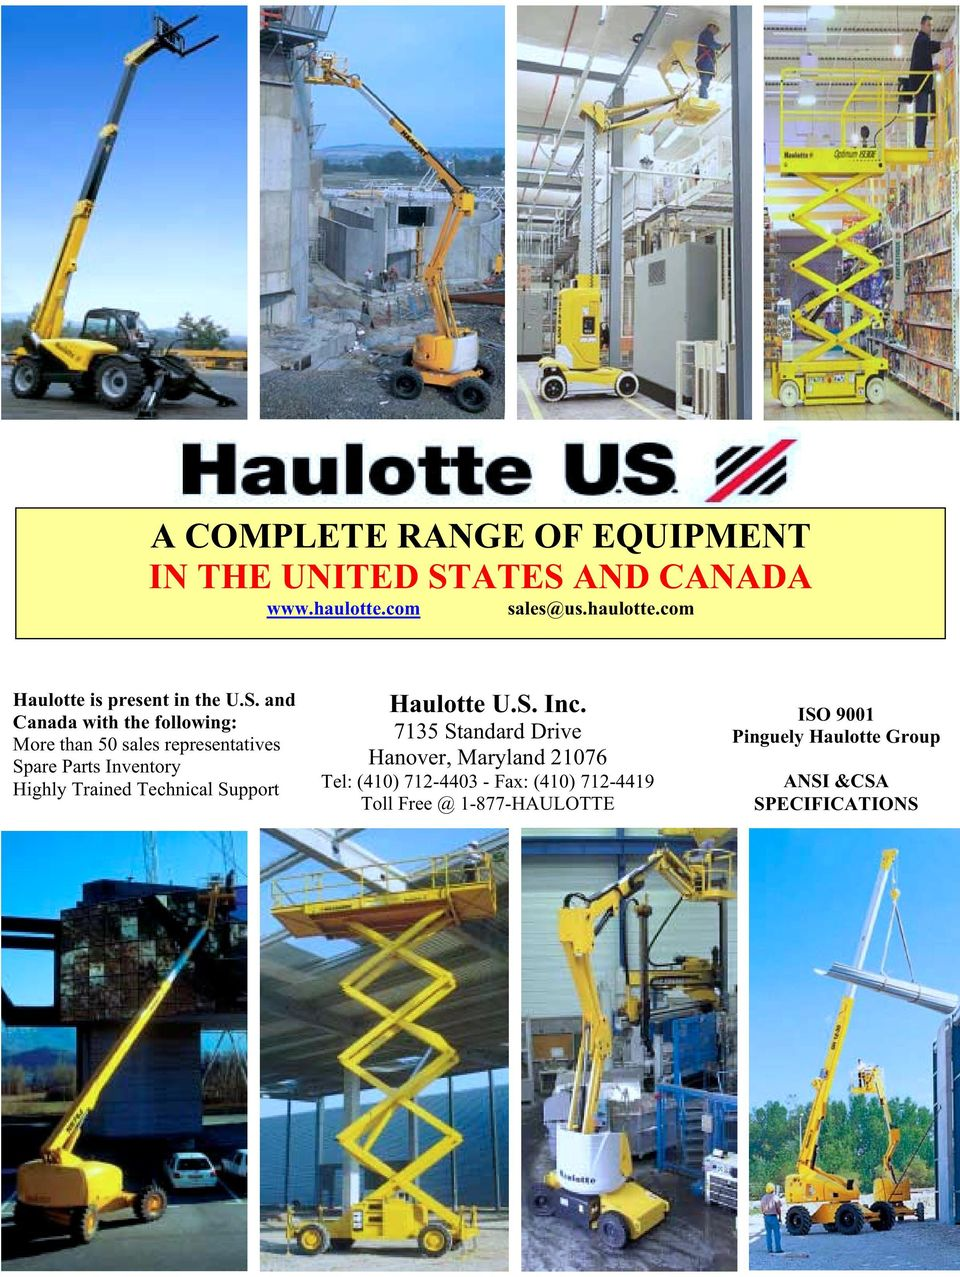 Technical Support Haulotte U.S. Inc.